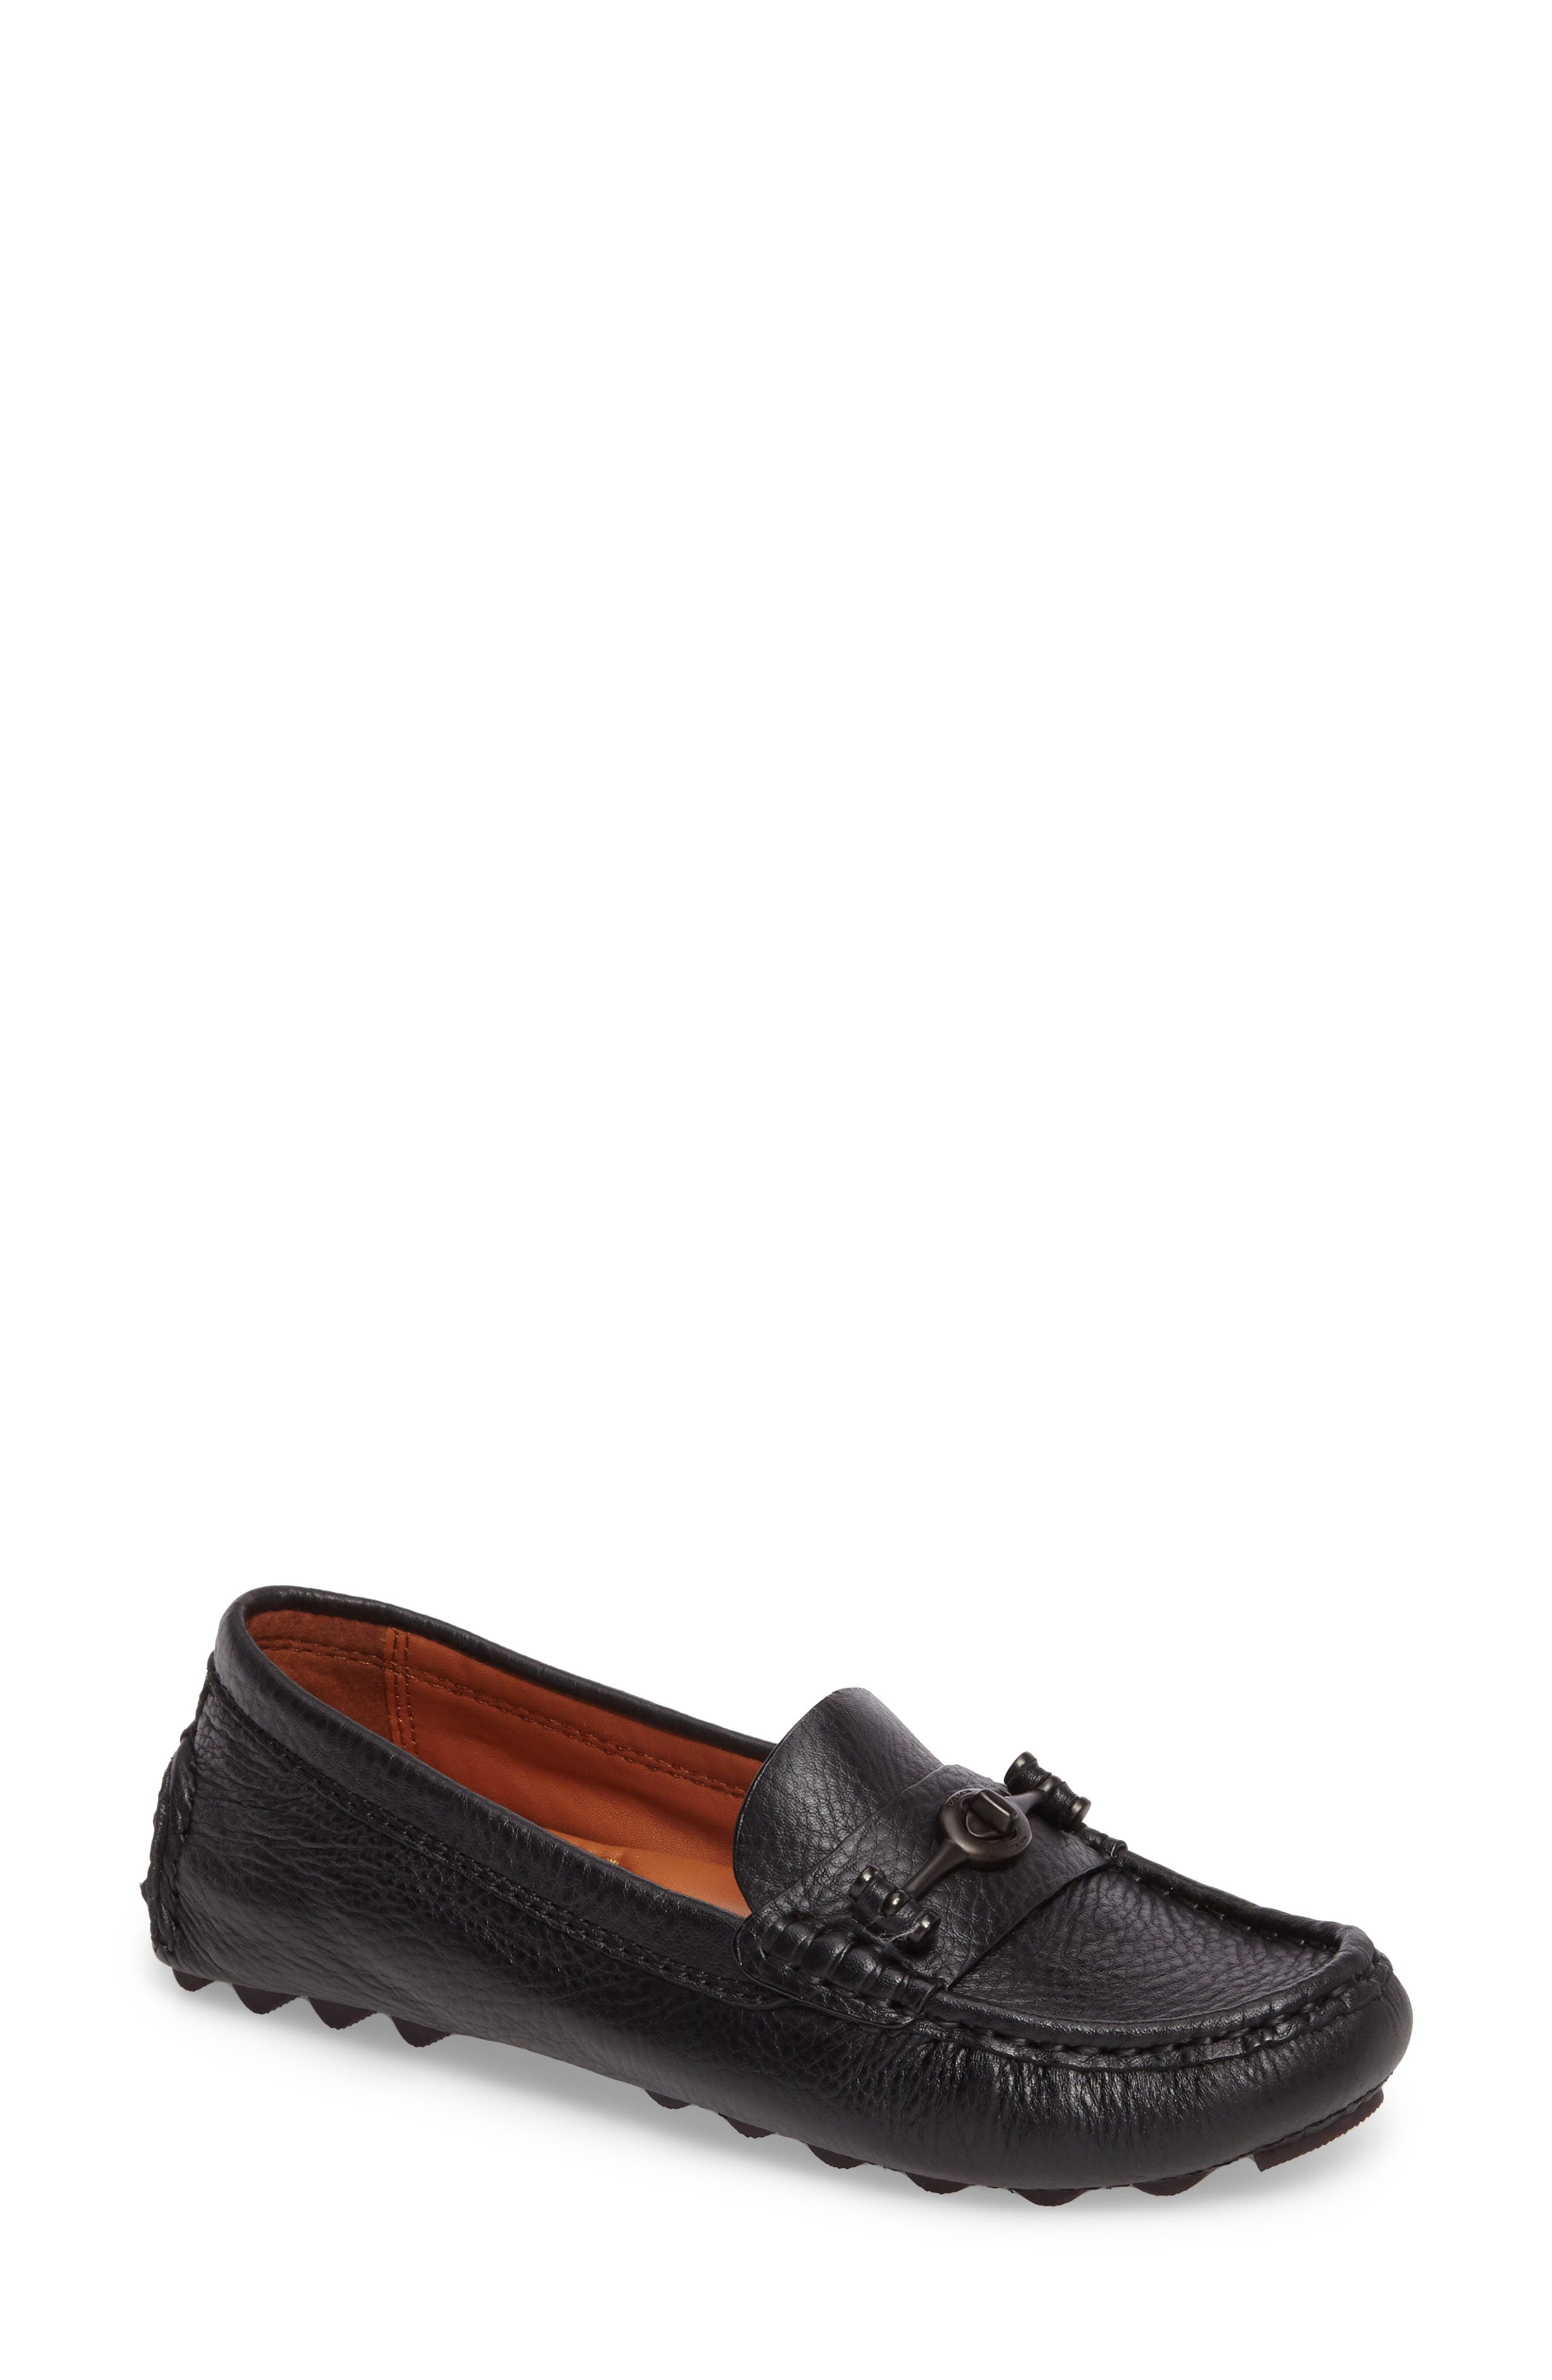 COACH Crosby Driver Loafer